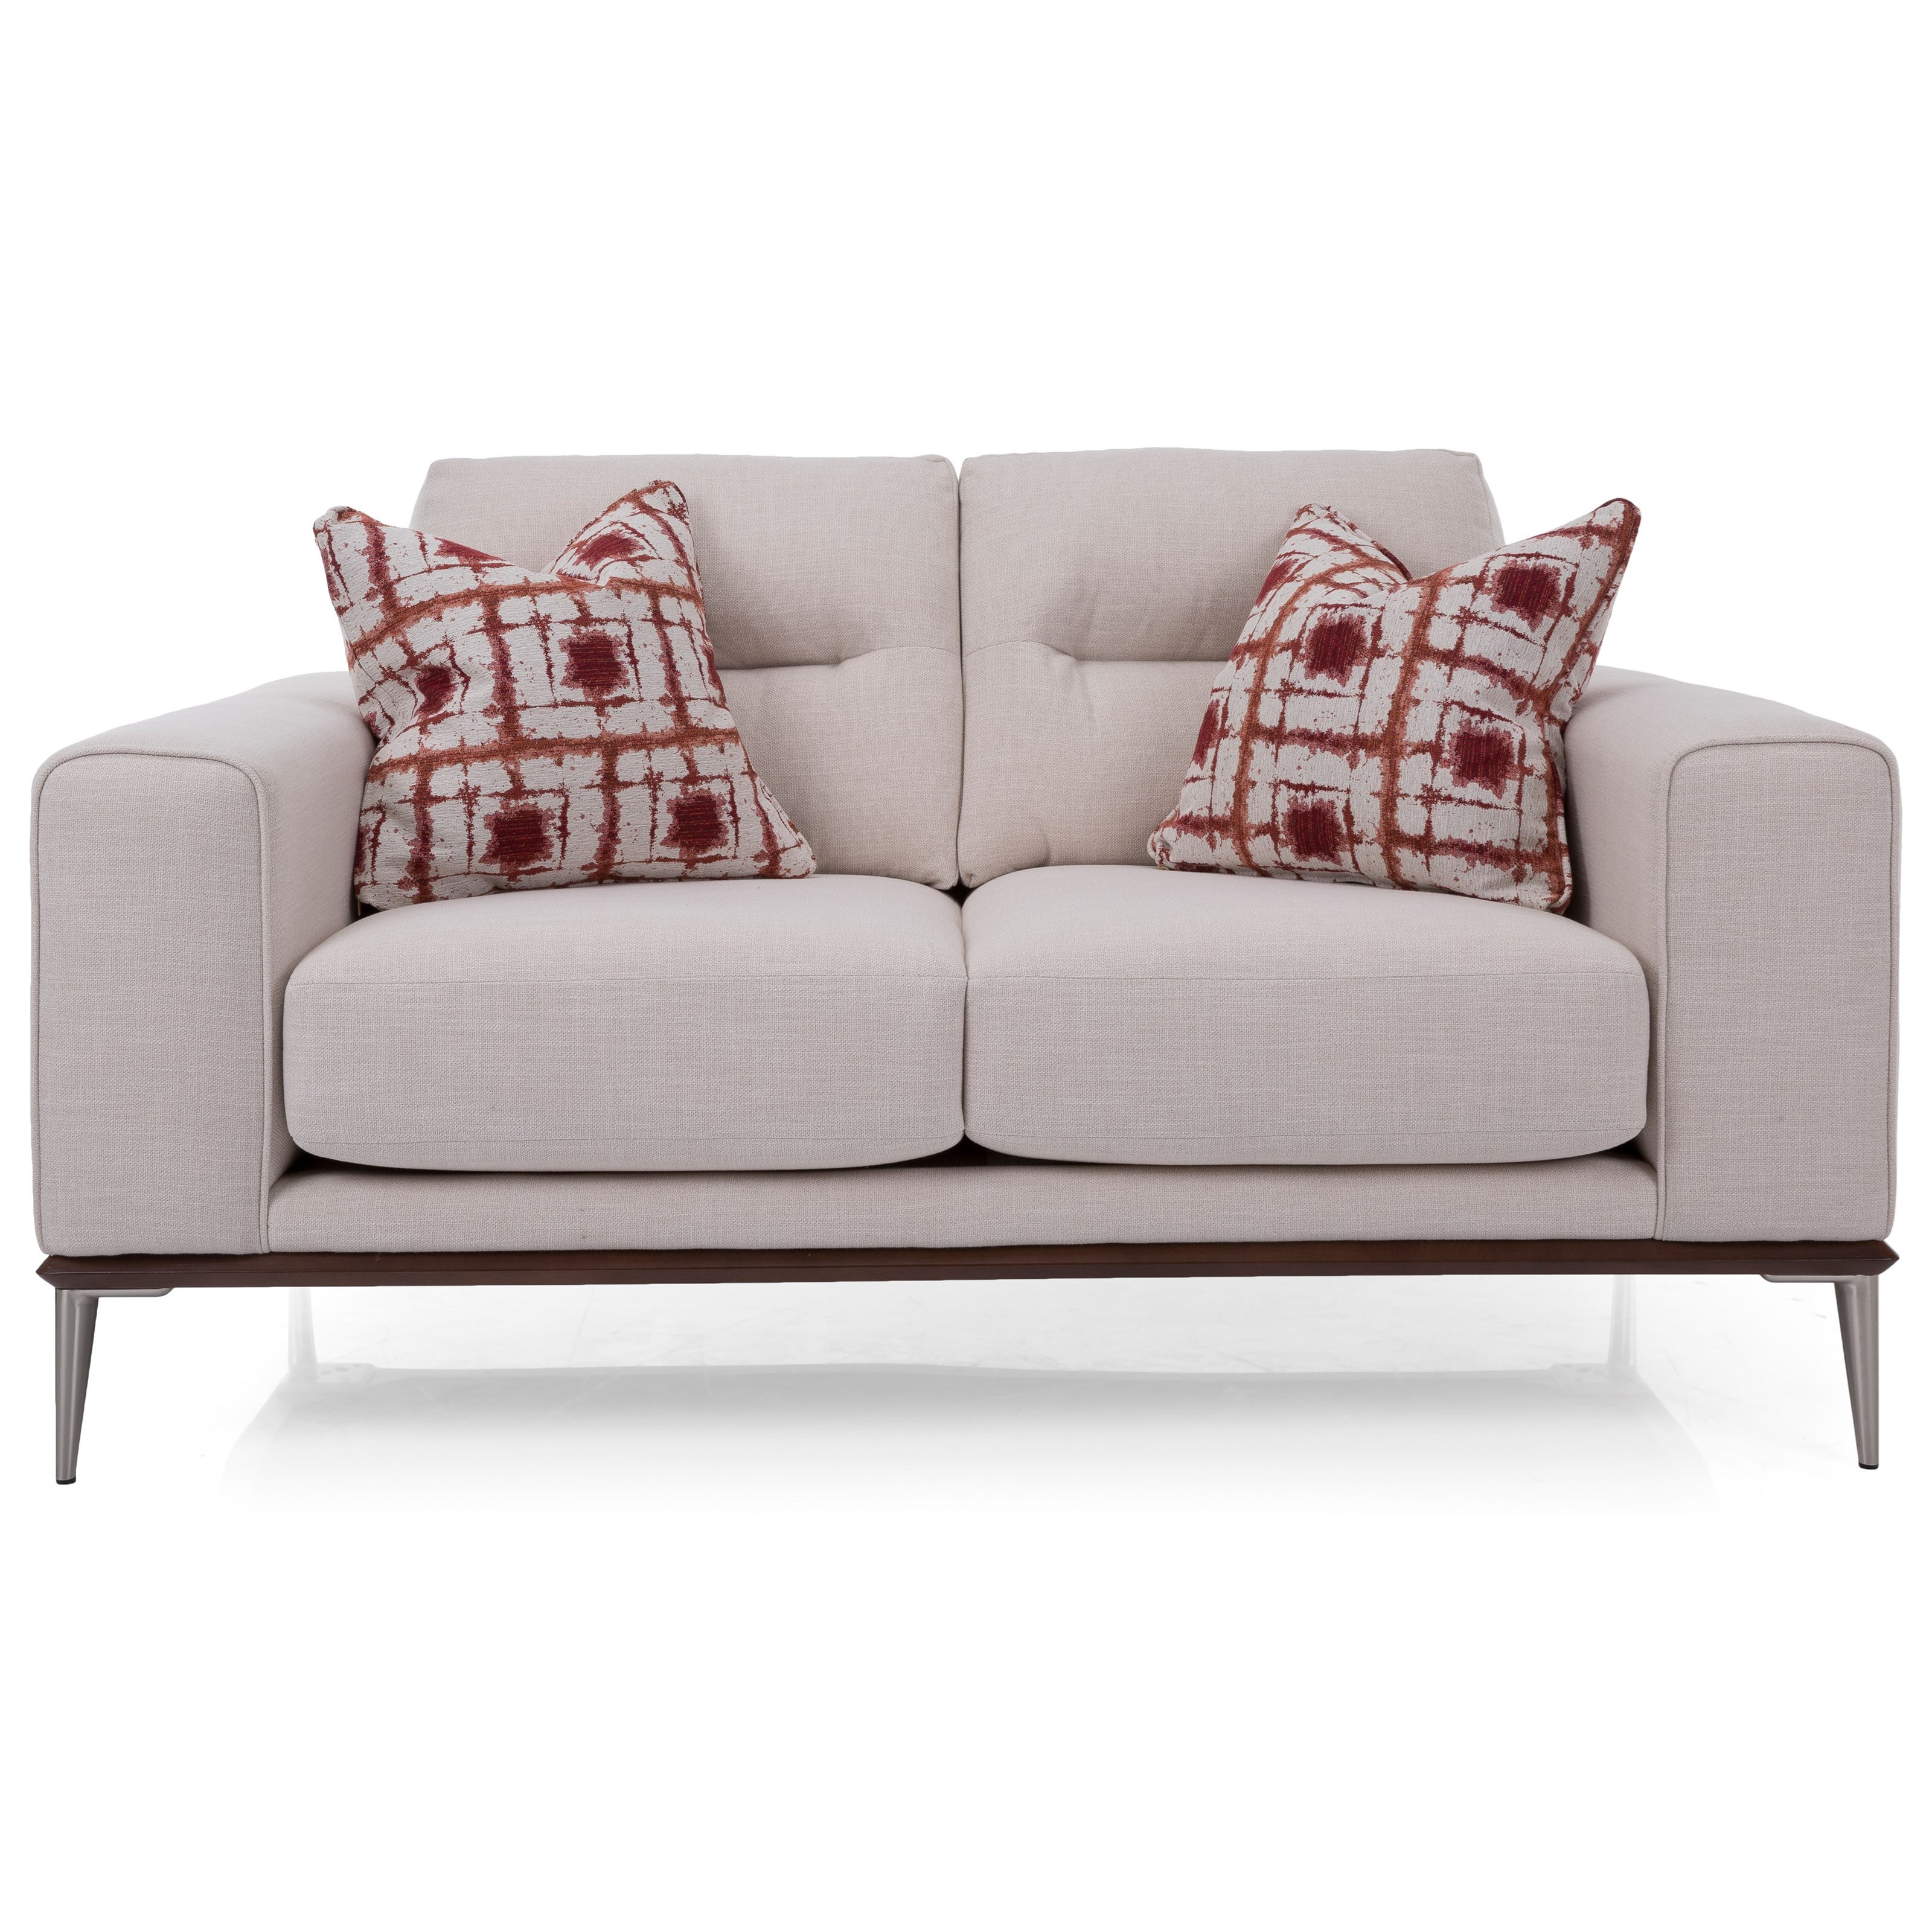 2030 Loveseat by Decor-Rest at Rooms for Less